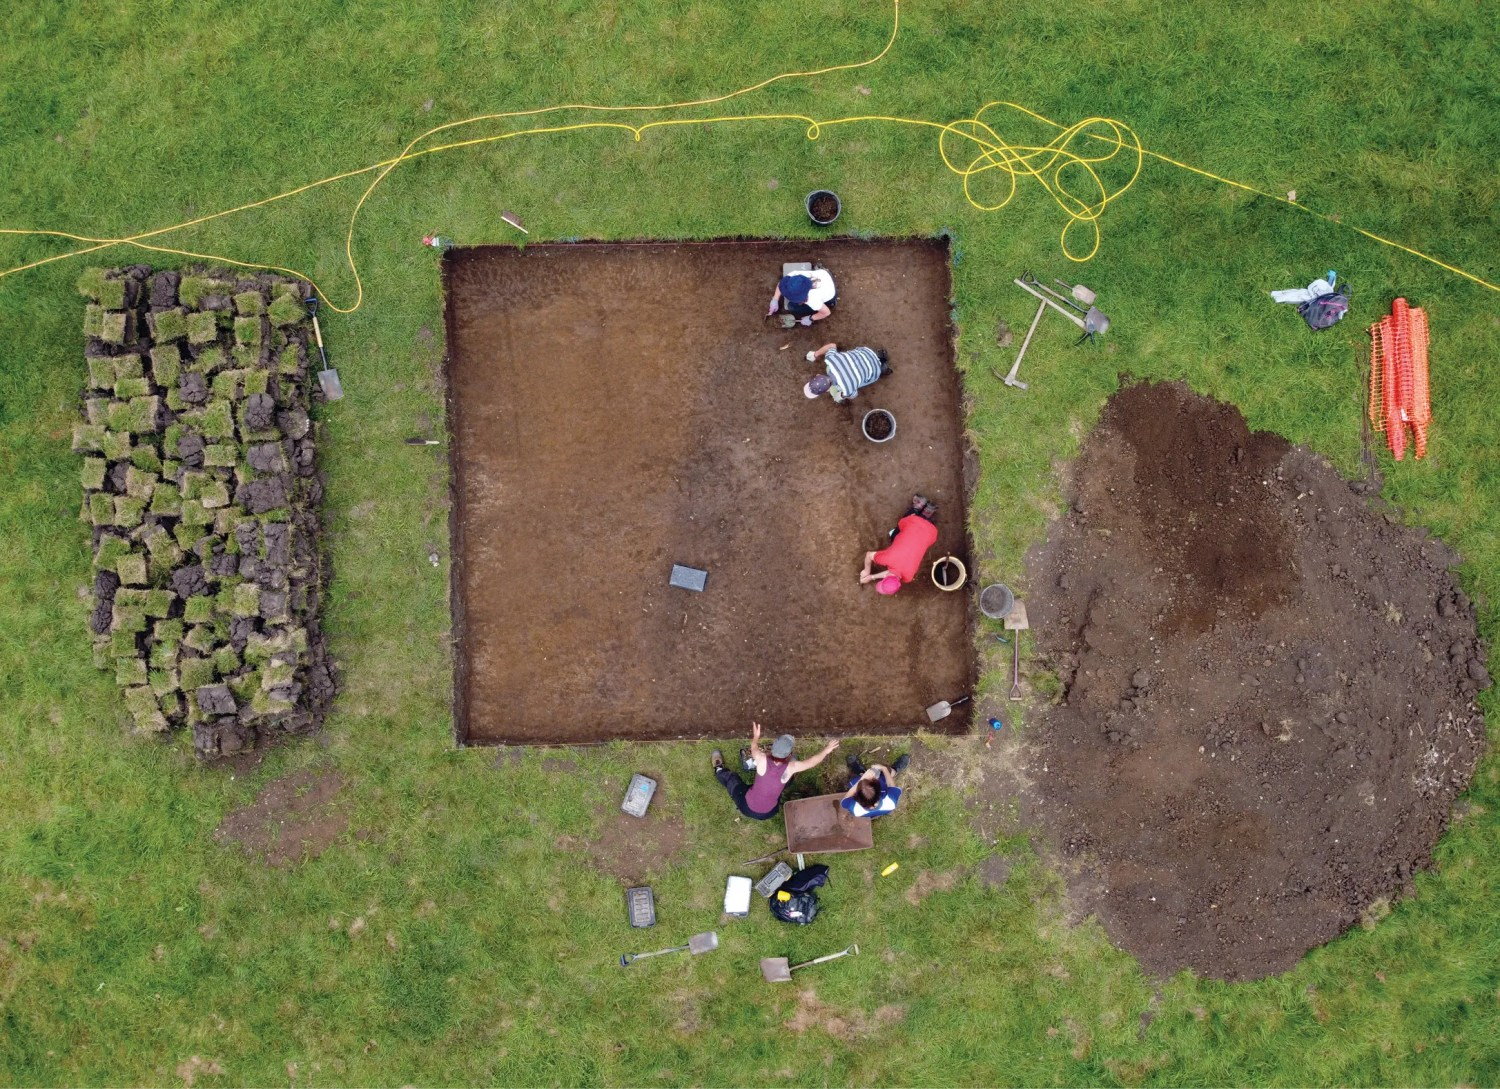 above The trenches opened at Cookham revealed sections of boundary ditches dividing the landscape into distinct zones, some of which were dedicated to domestic activities, and others to industry.